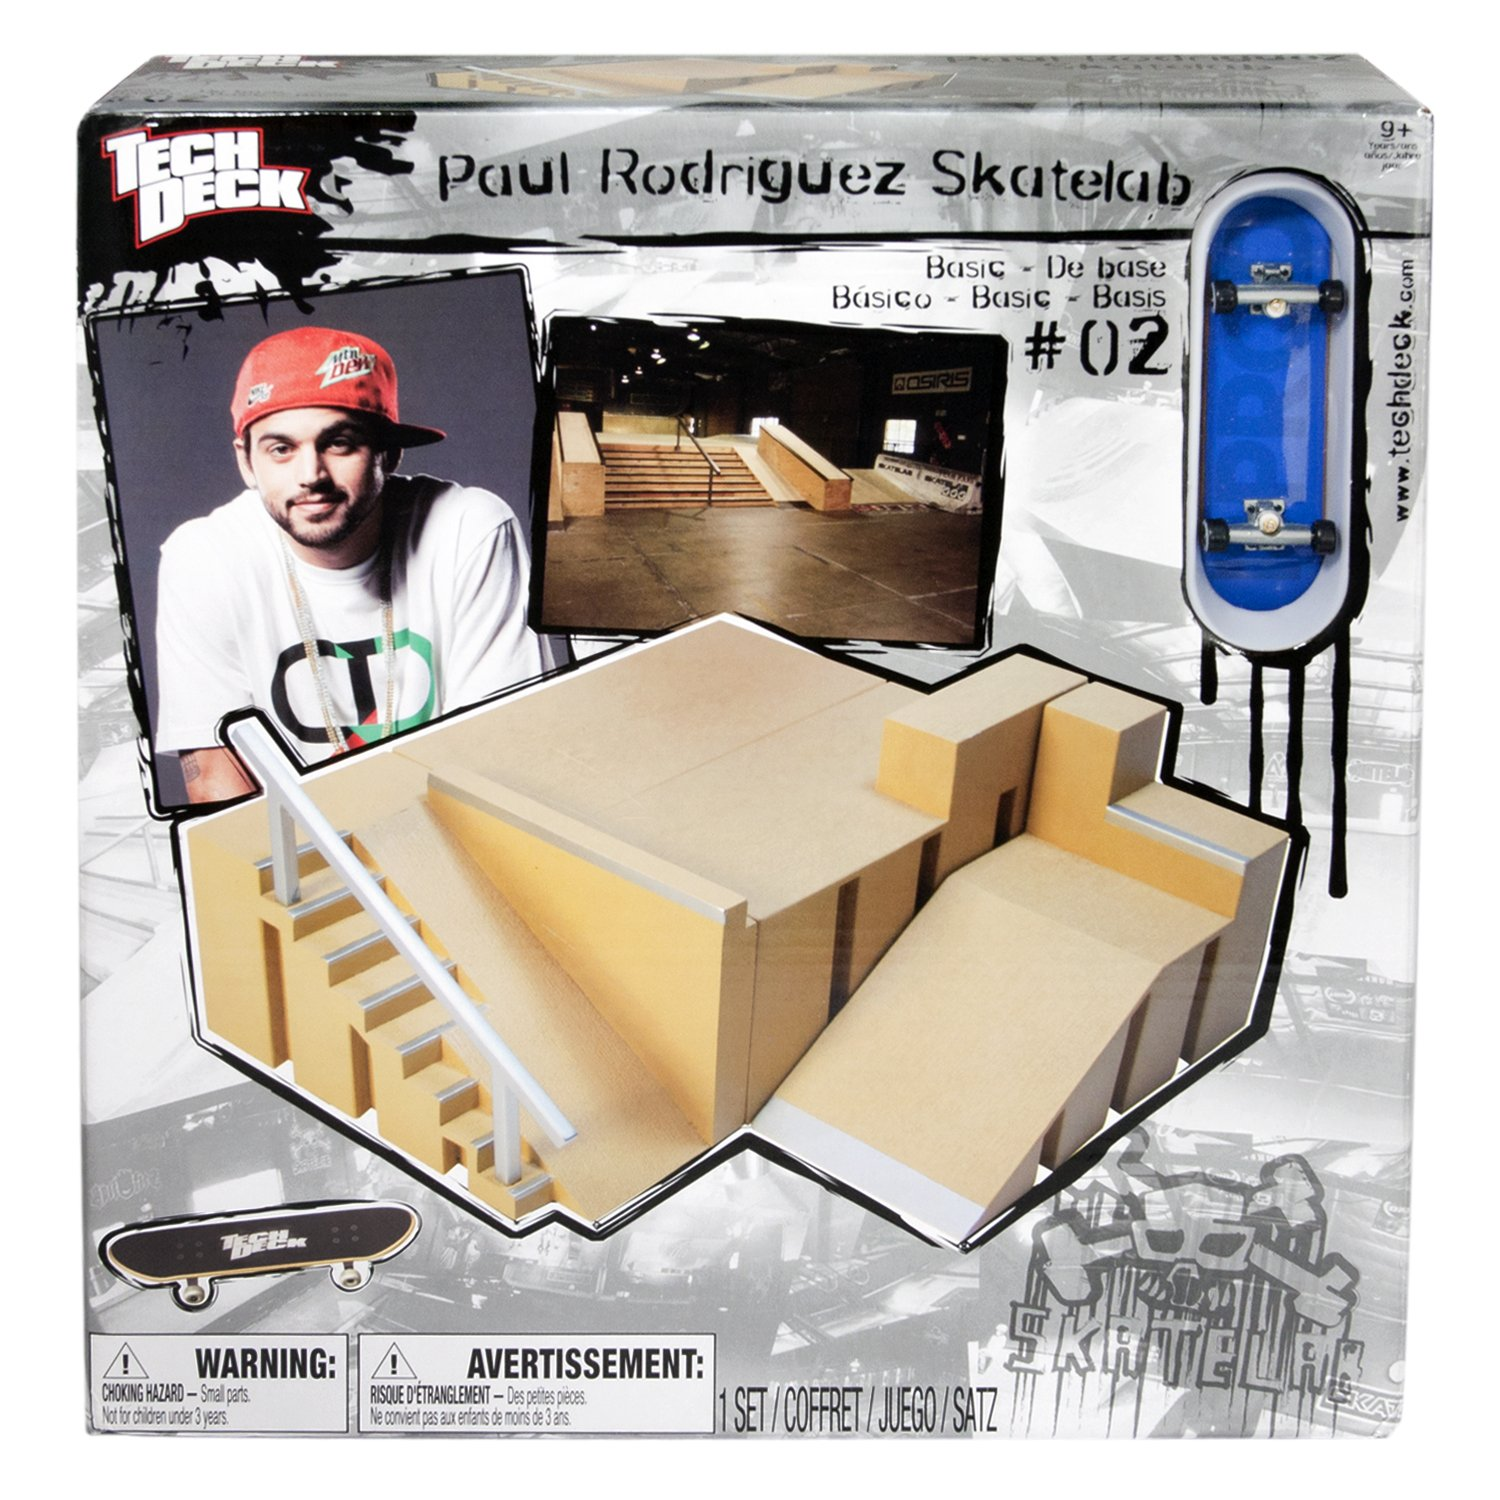 Tech Deck Small Sk8 Lab - Big Ramp And Kicker Obstacle